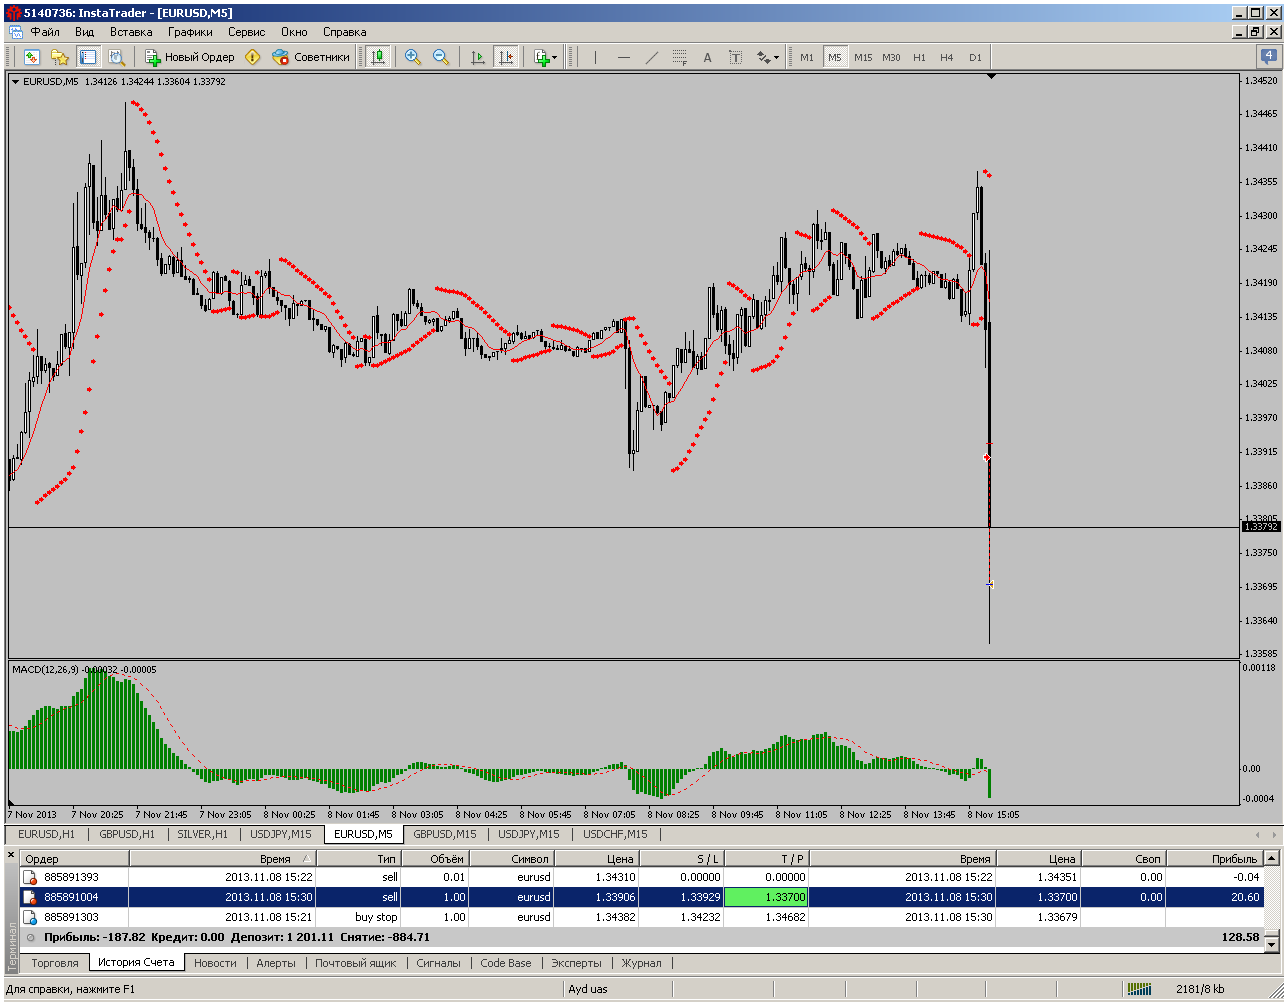 Does forex trade on saturday